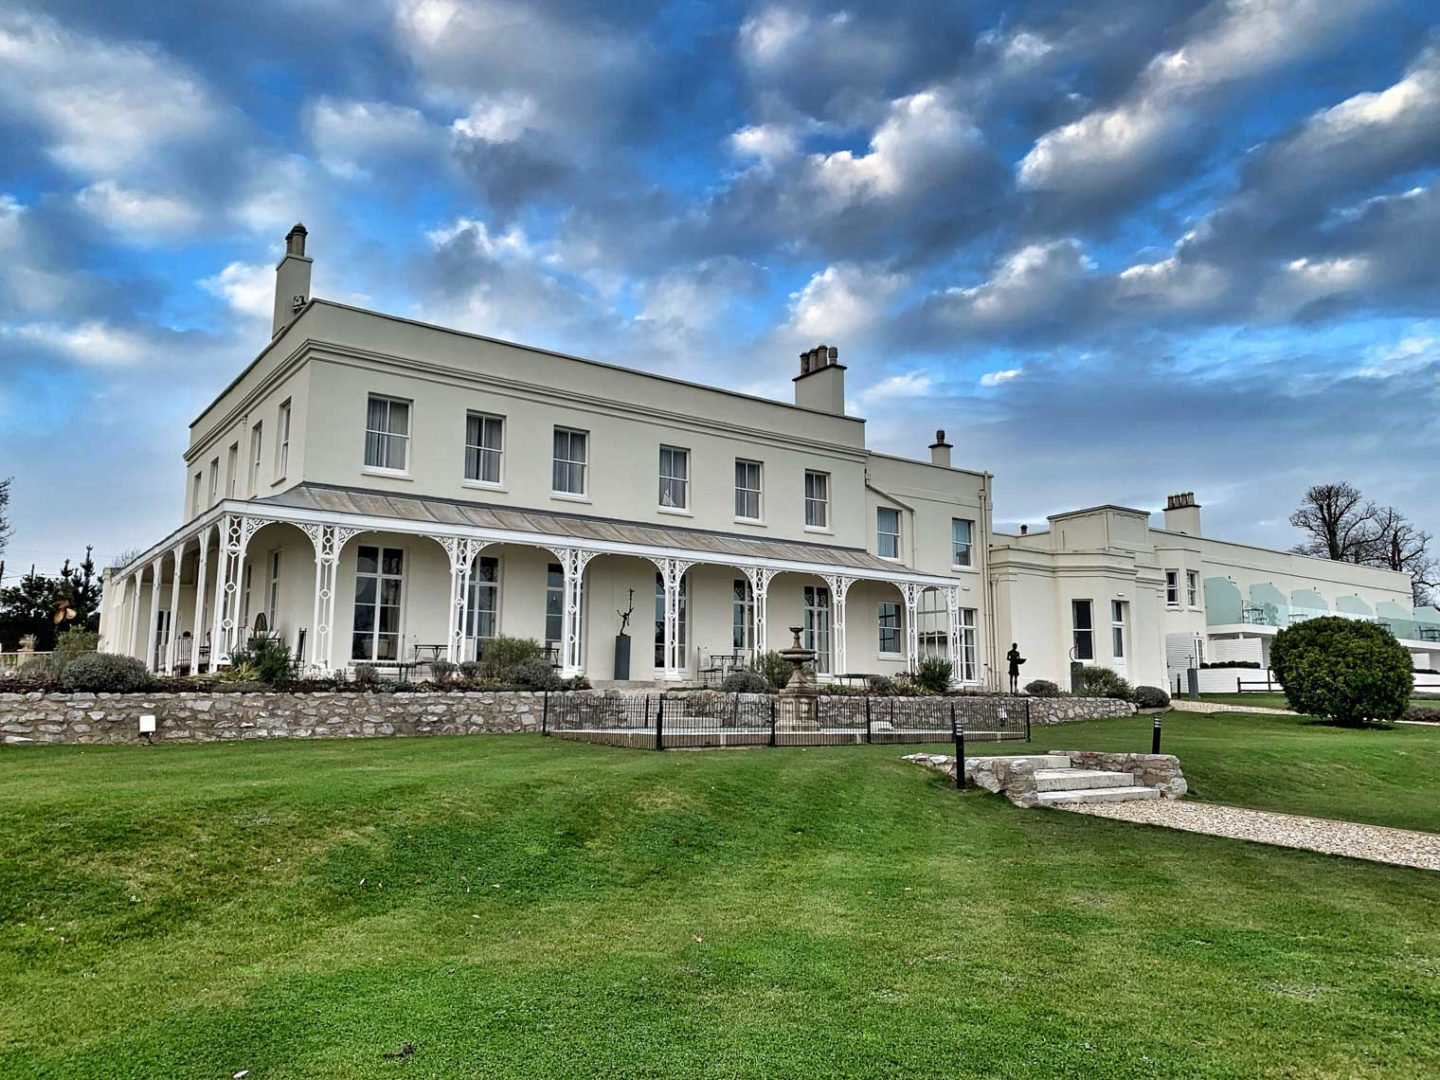 Hotel review: Lympstone Manor hotel in Devon for your perfect weekend away